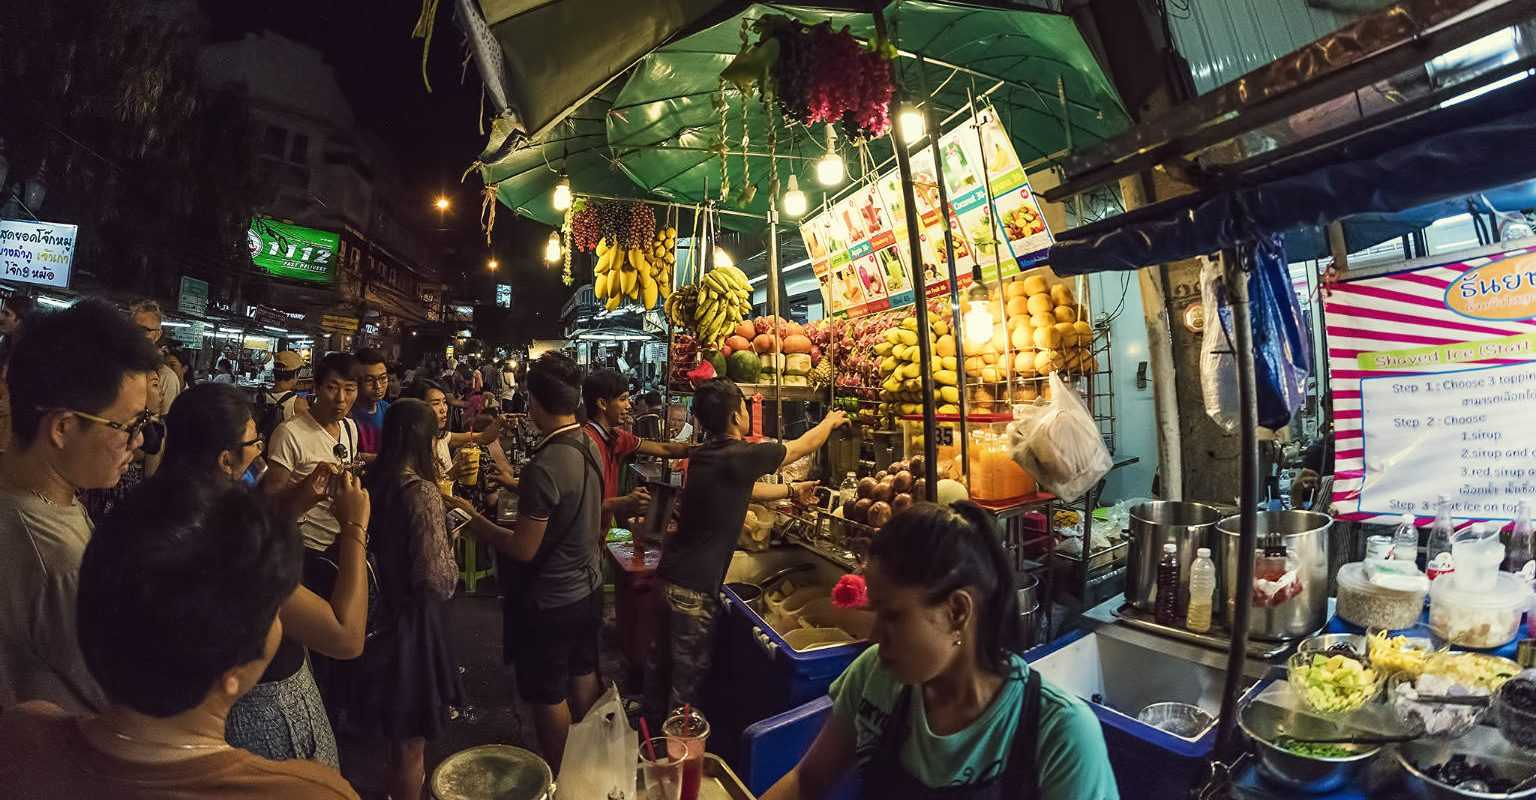 Hustle and bustle at one of the food stalls on Rambuttri Road in Bangkok